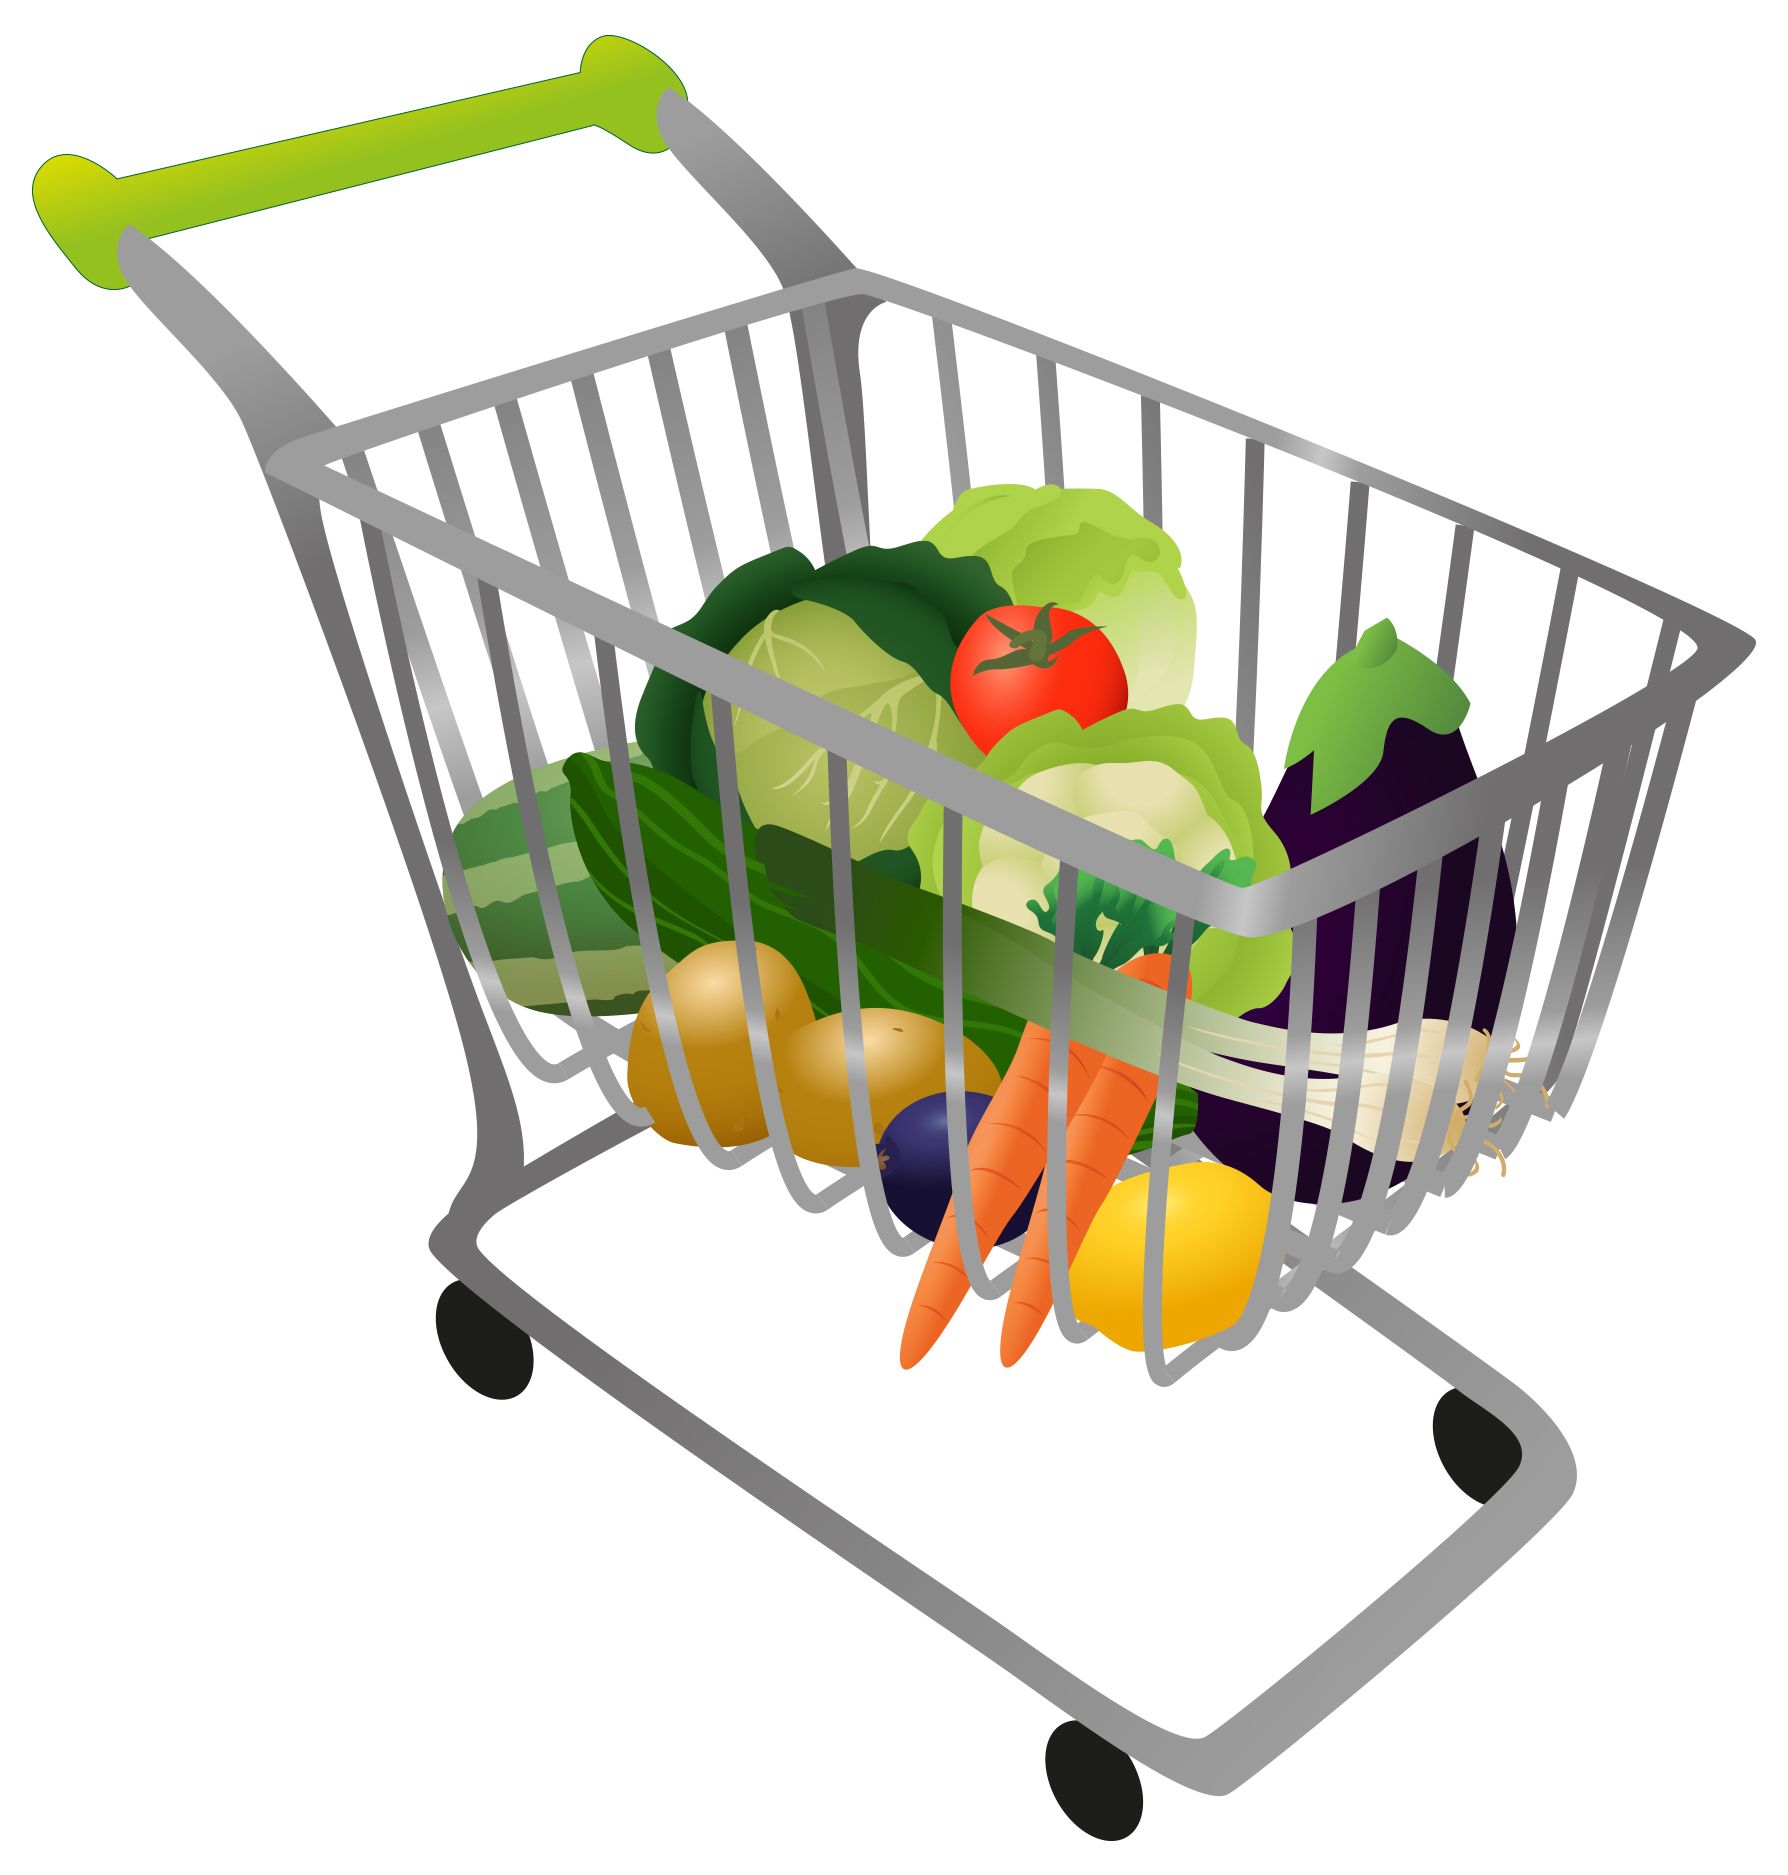 Shopping trolley clipart free vector freeuse library Shopping Cart Clipart | Free download best Shopping Cart ... vector freeuse library